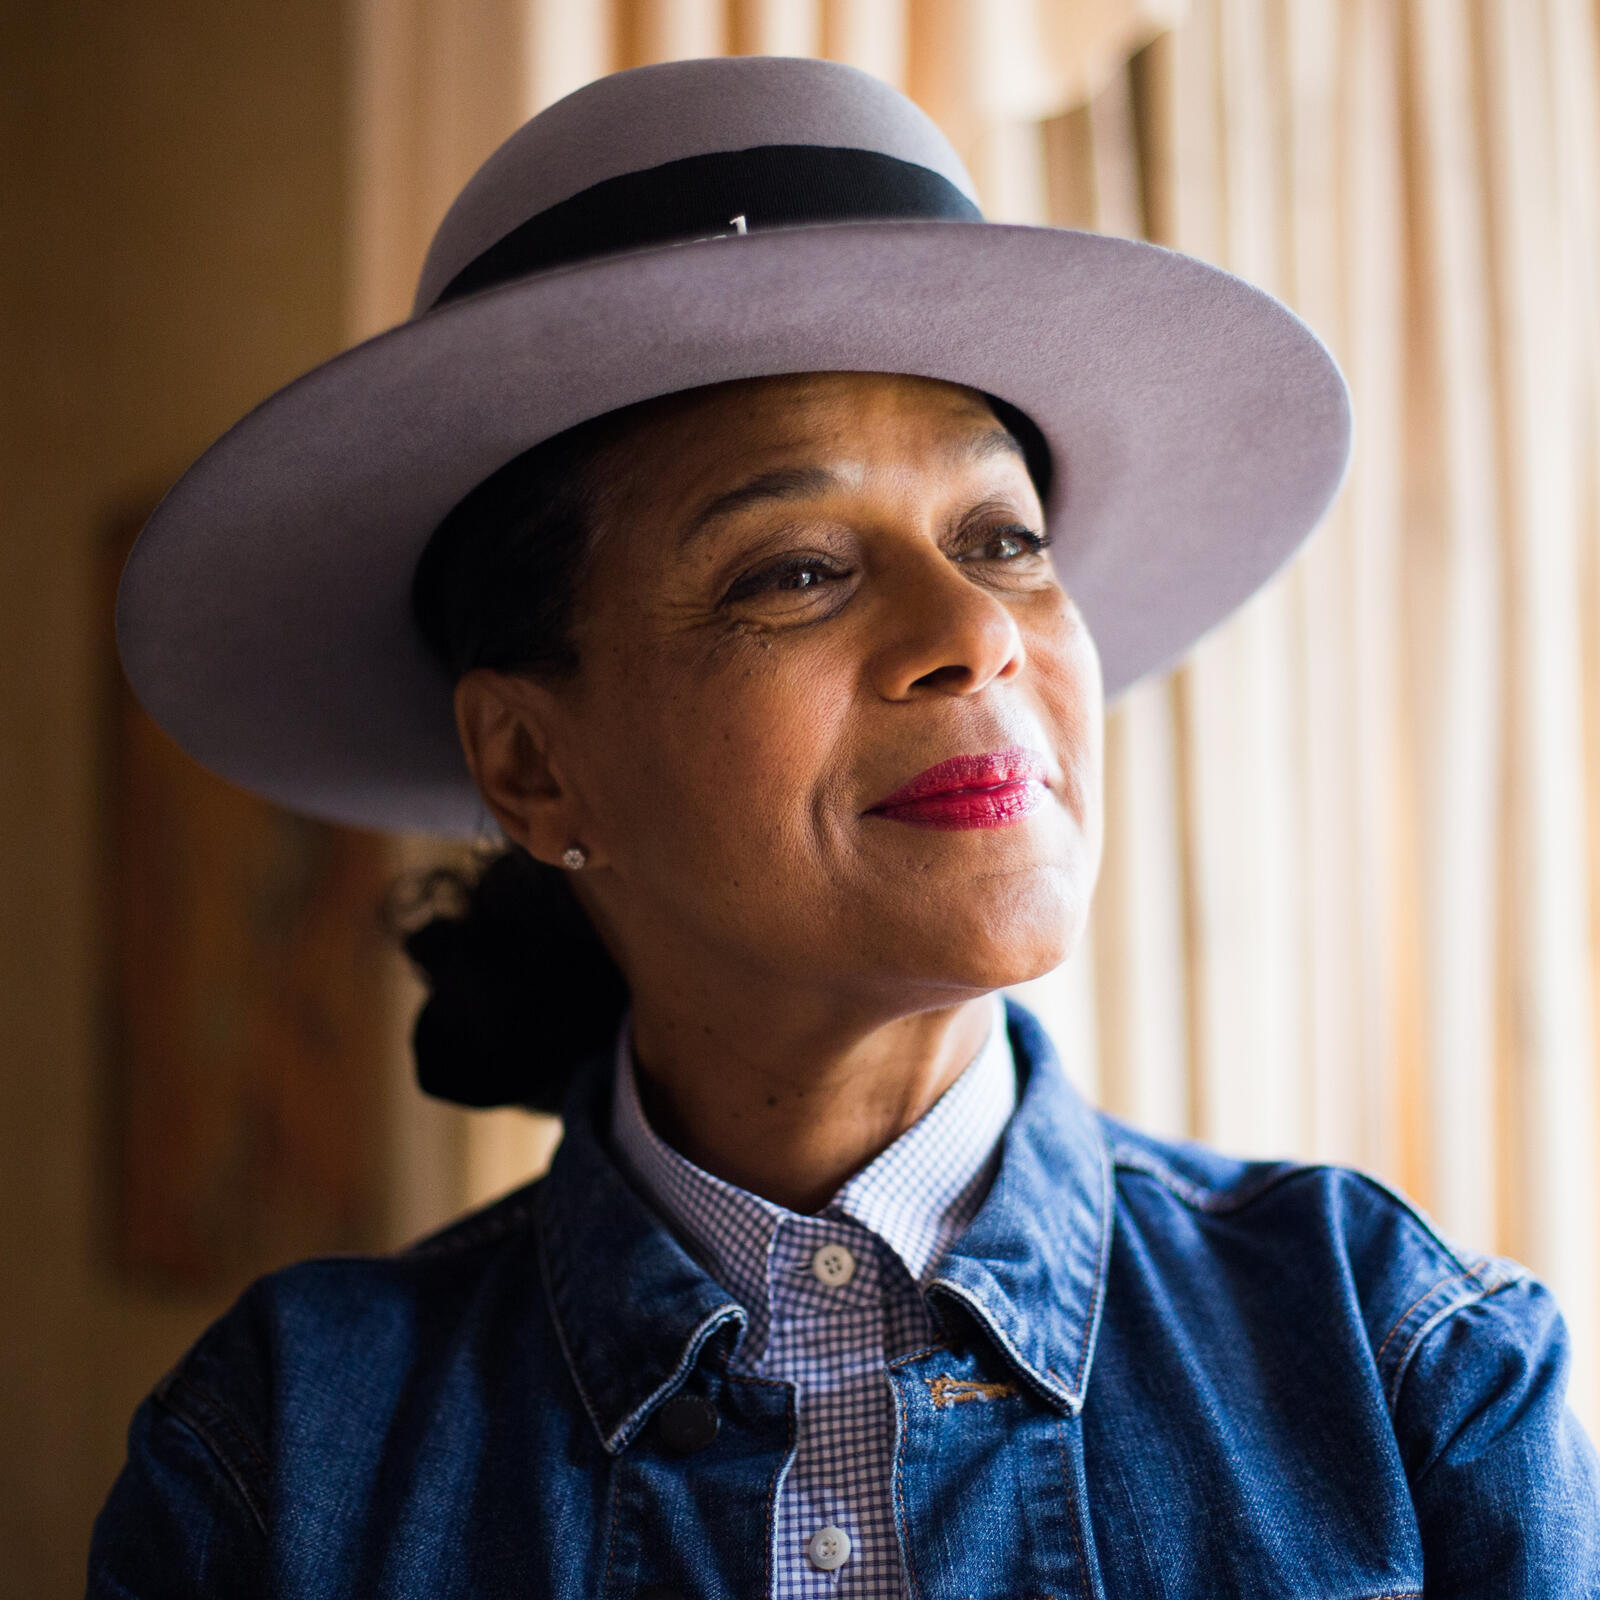 5: Pauline Black: the original rude girl on female empowerment, intersectionality and being a music trailblazer